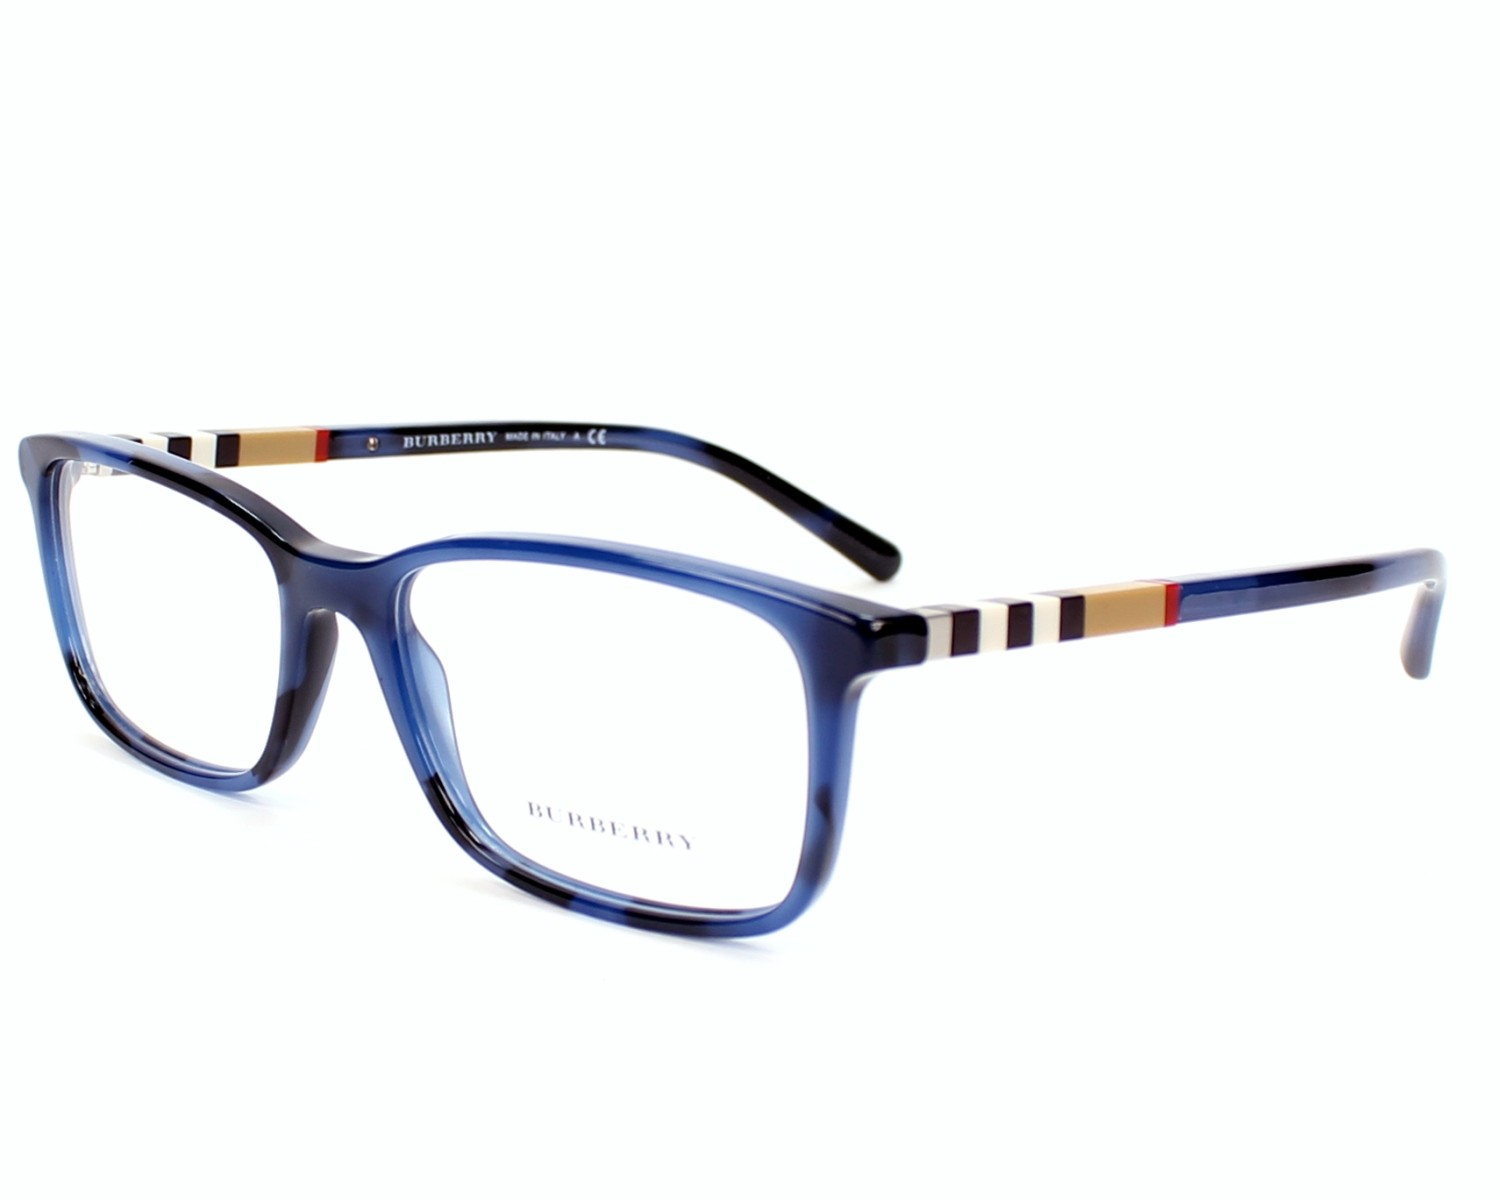 blue burberry sunglasses ppph  burberry blue sunglasses